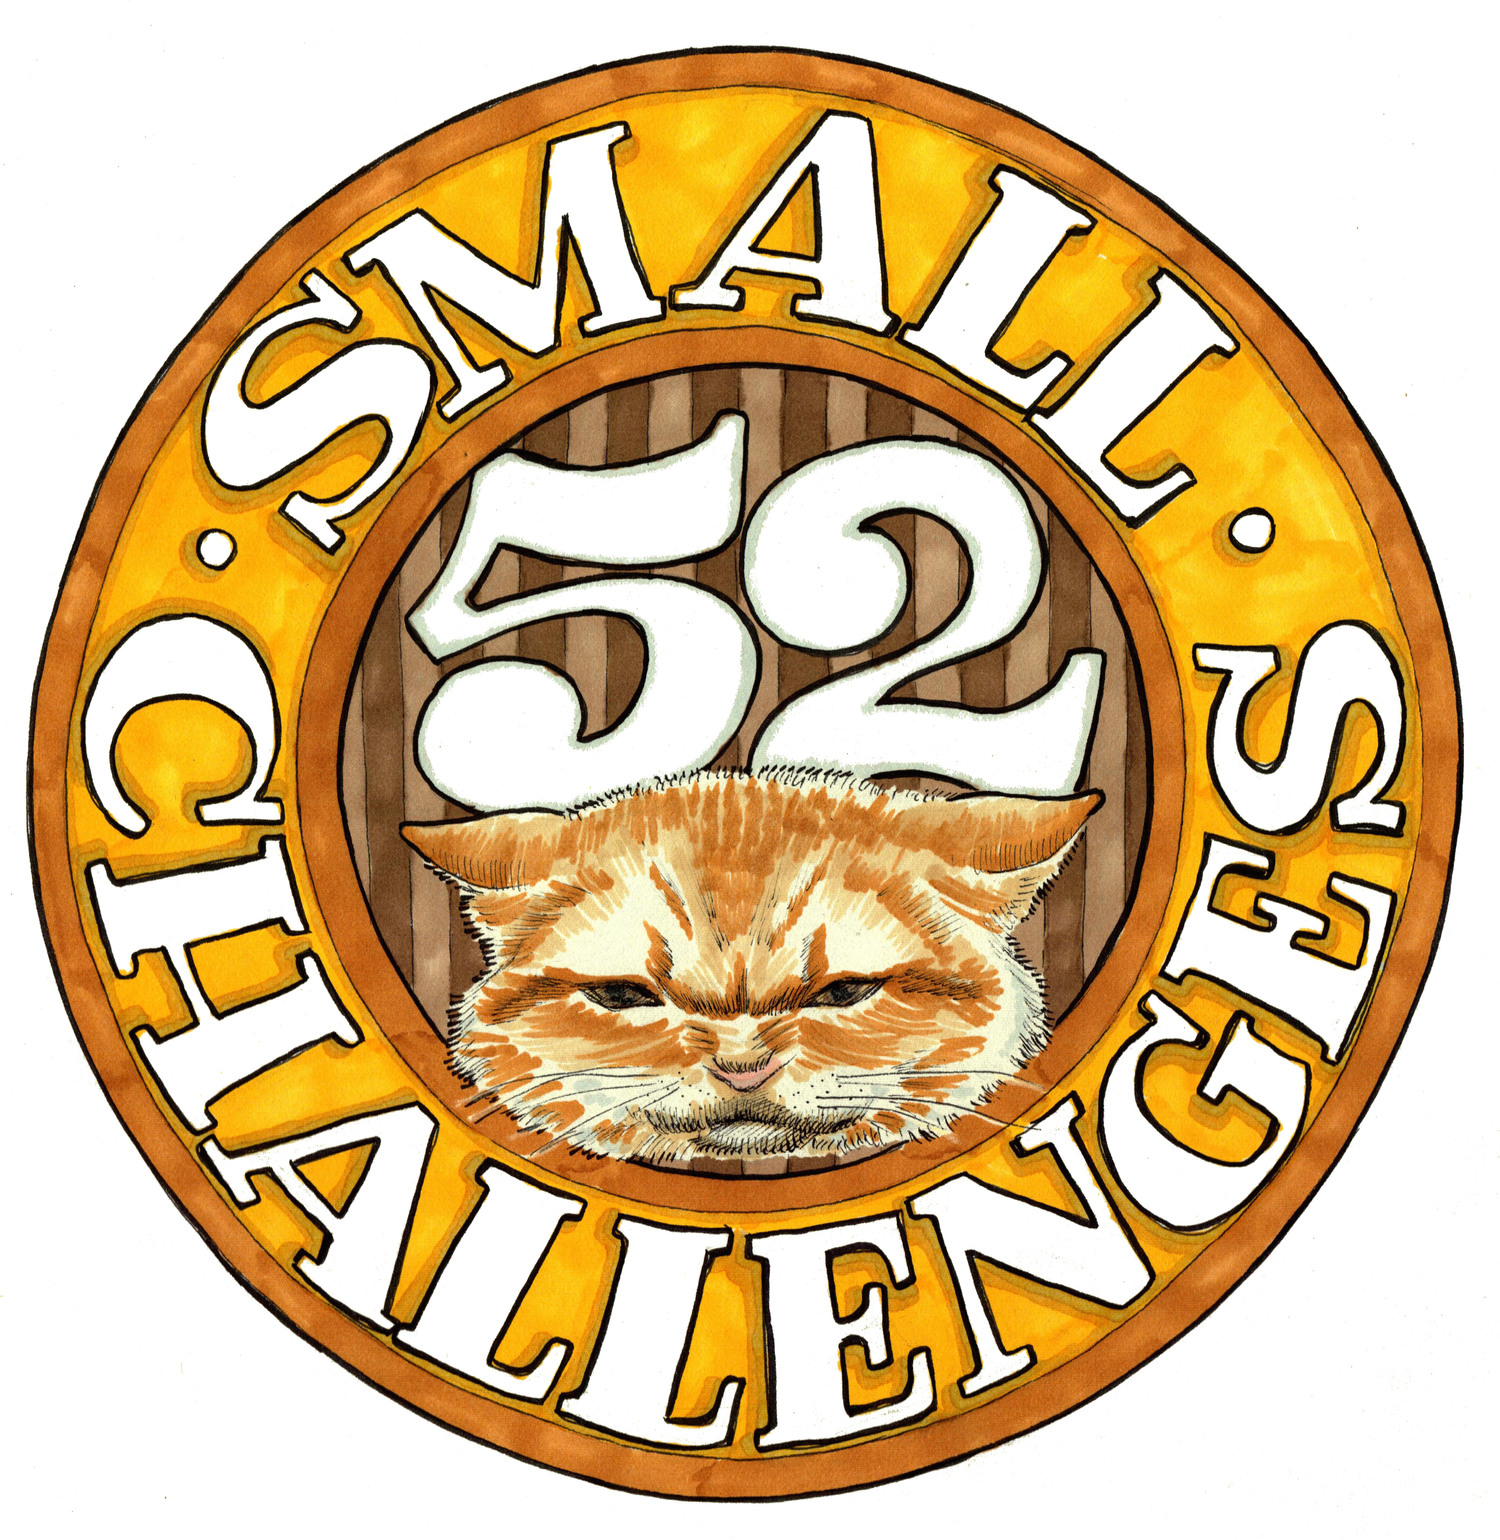 52 Small Challenges